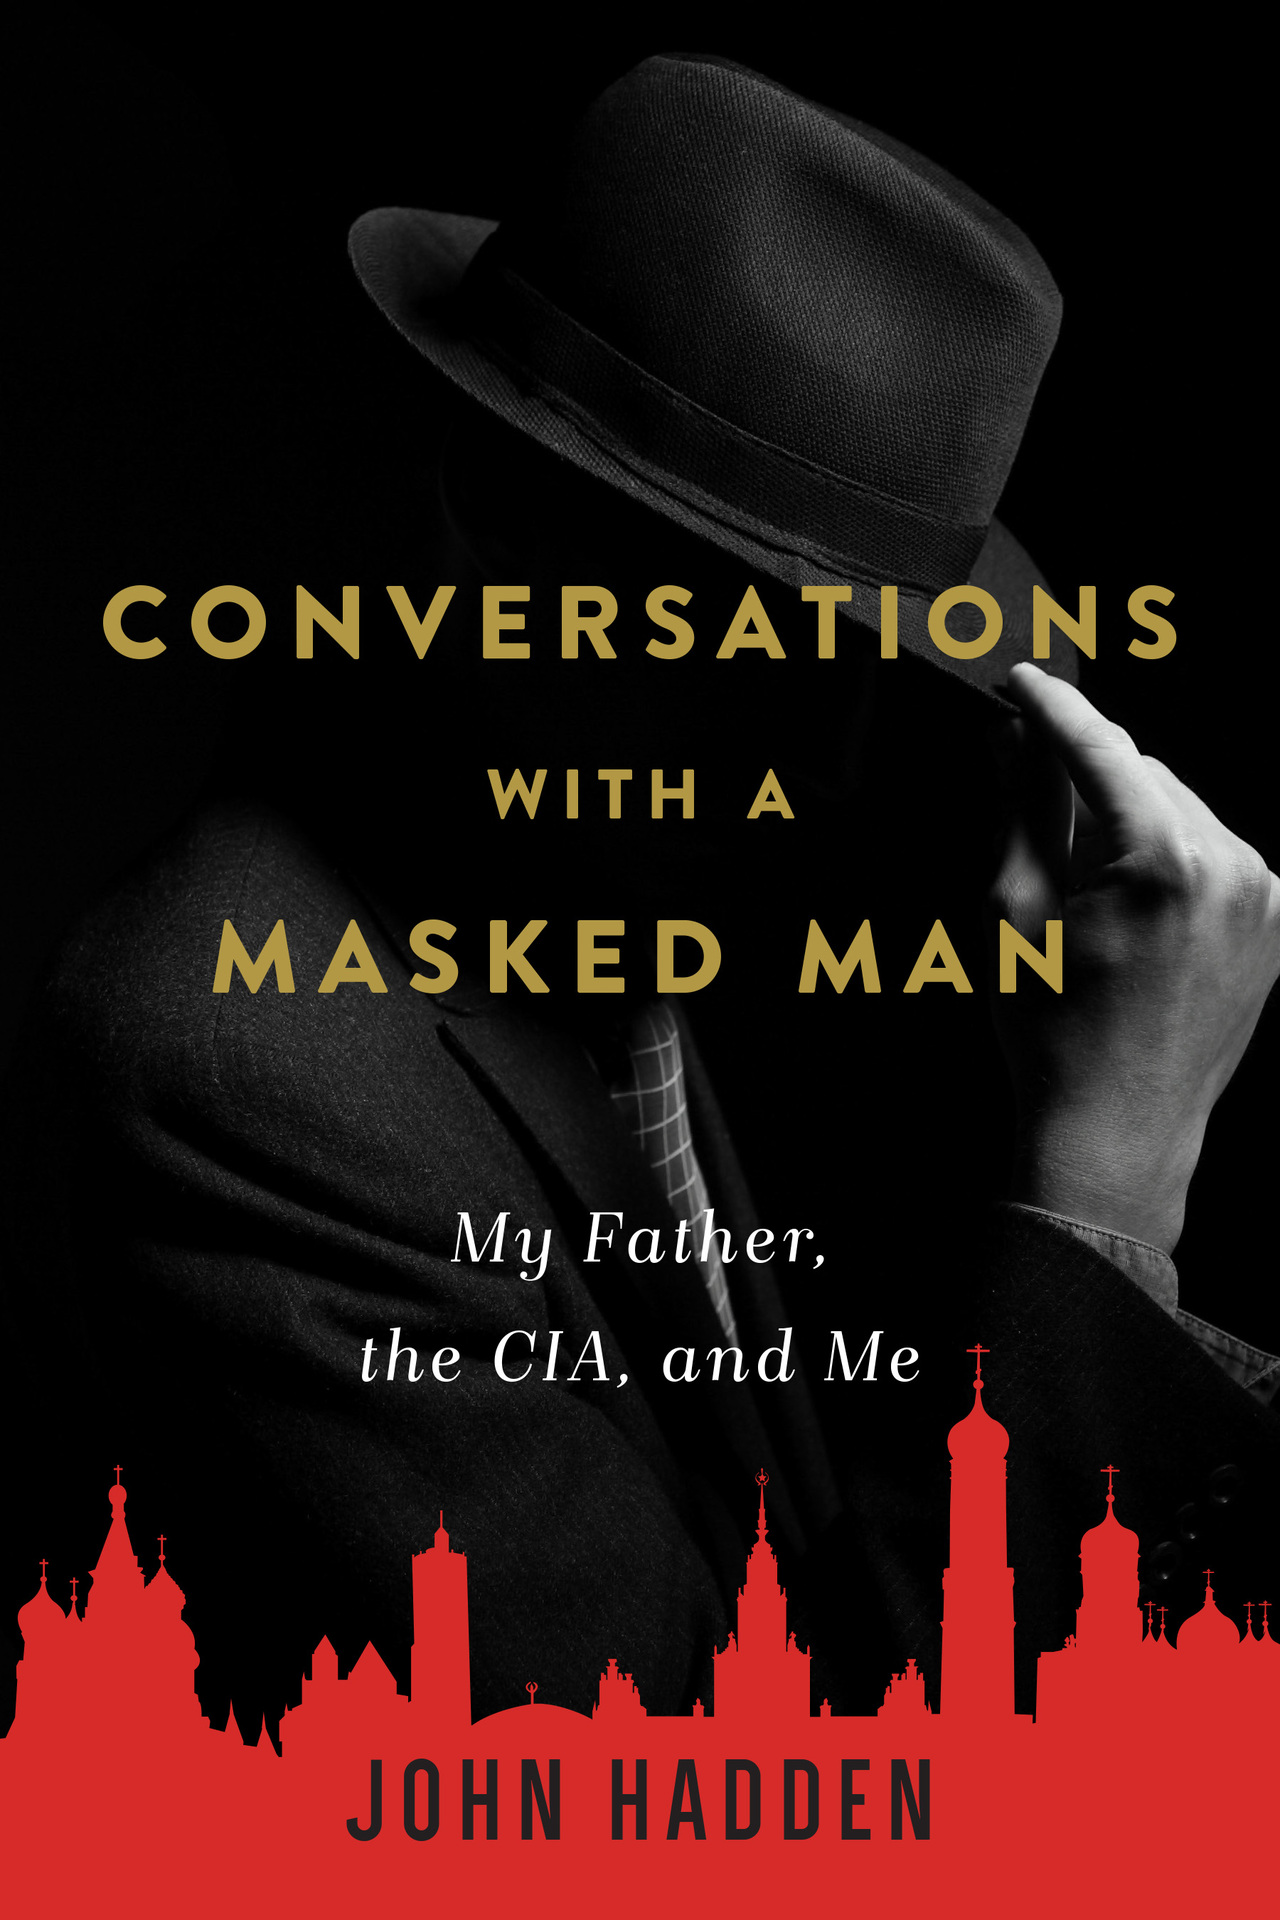 Conversations with a masked man 9781628725919